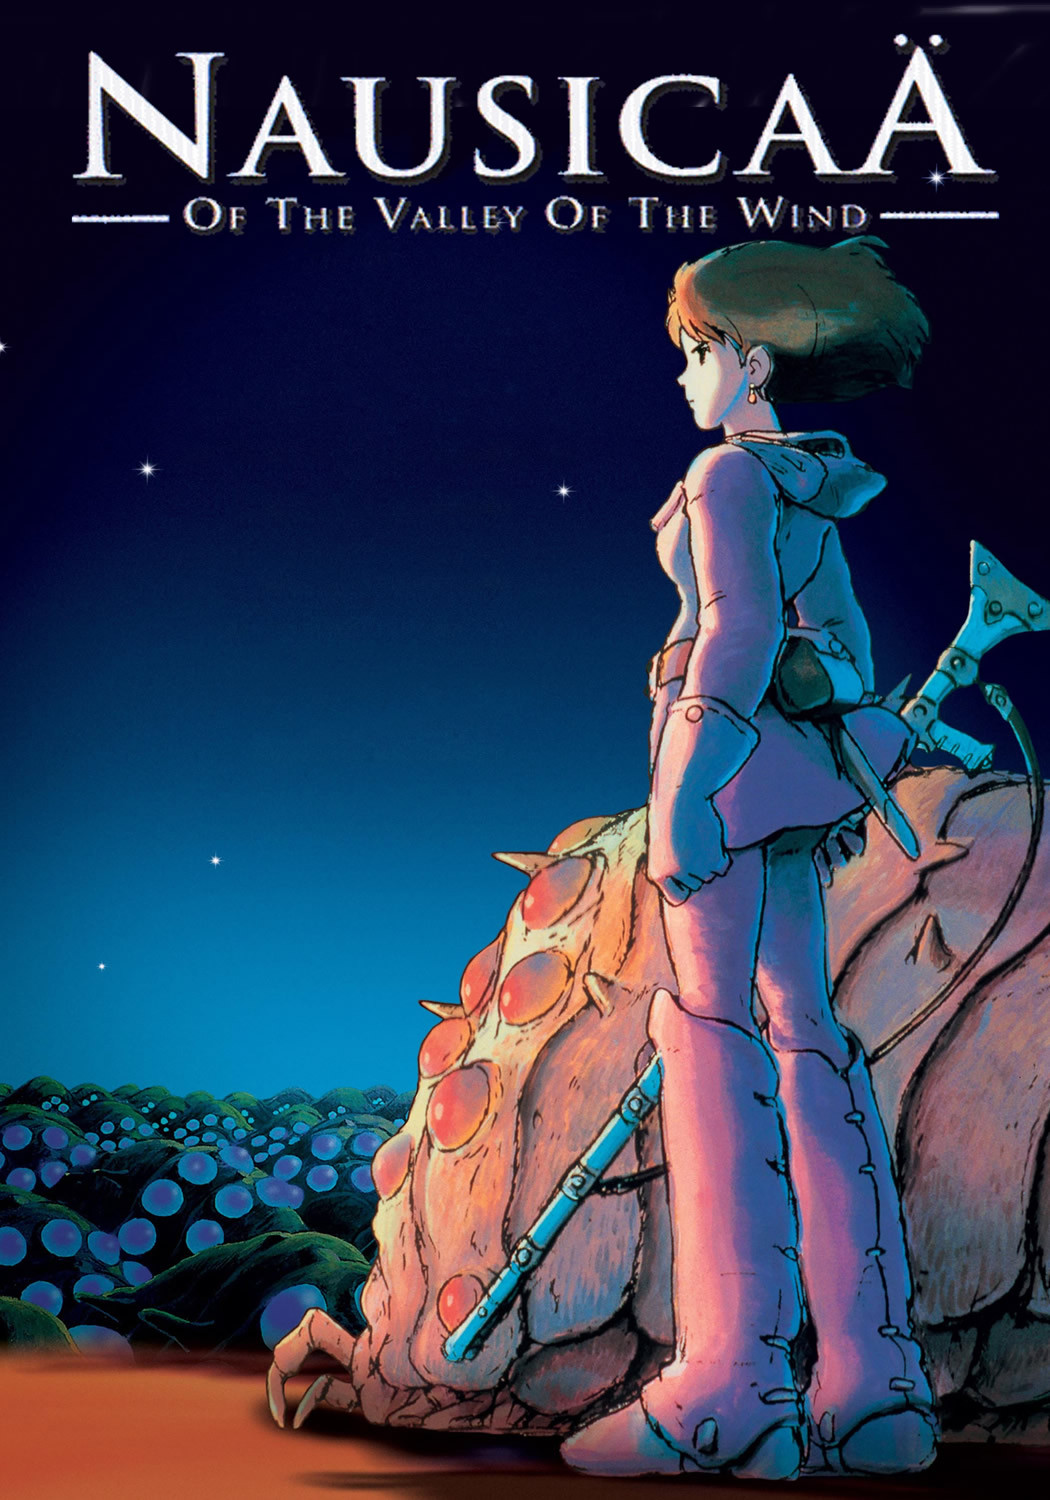 Shia Labeouf first movie: Nausicaä of the Valley of the Wind